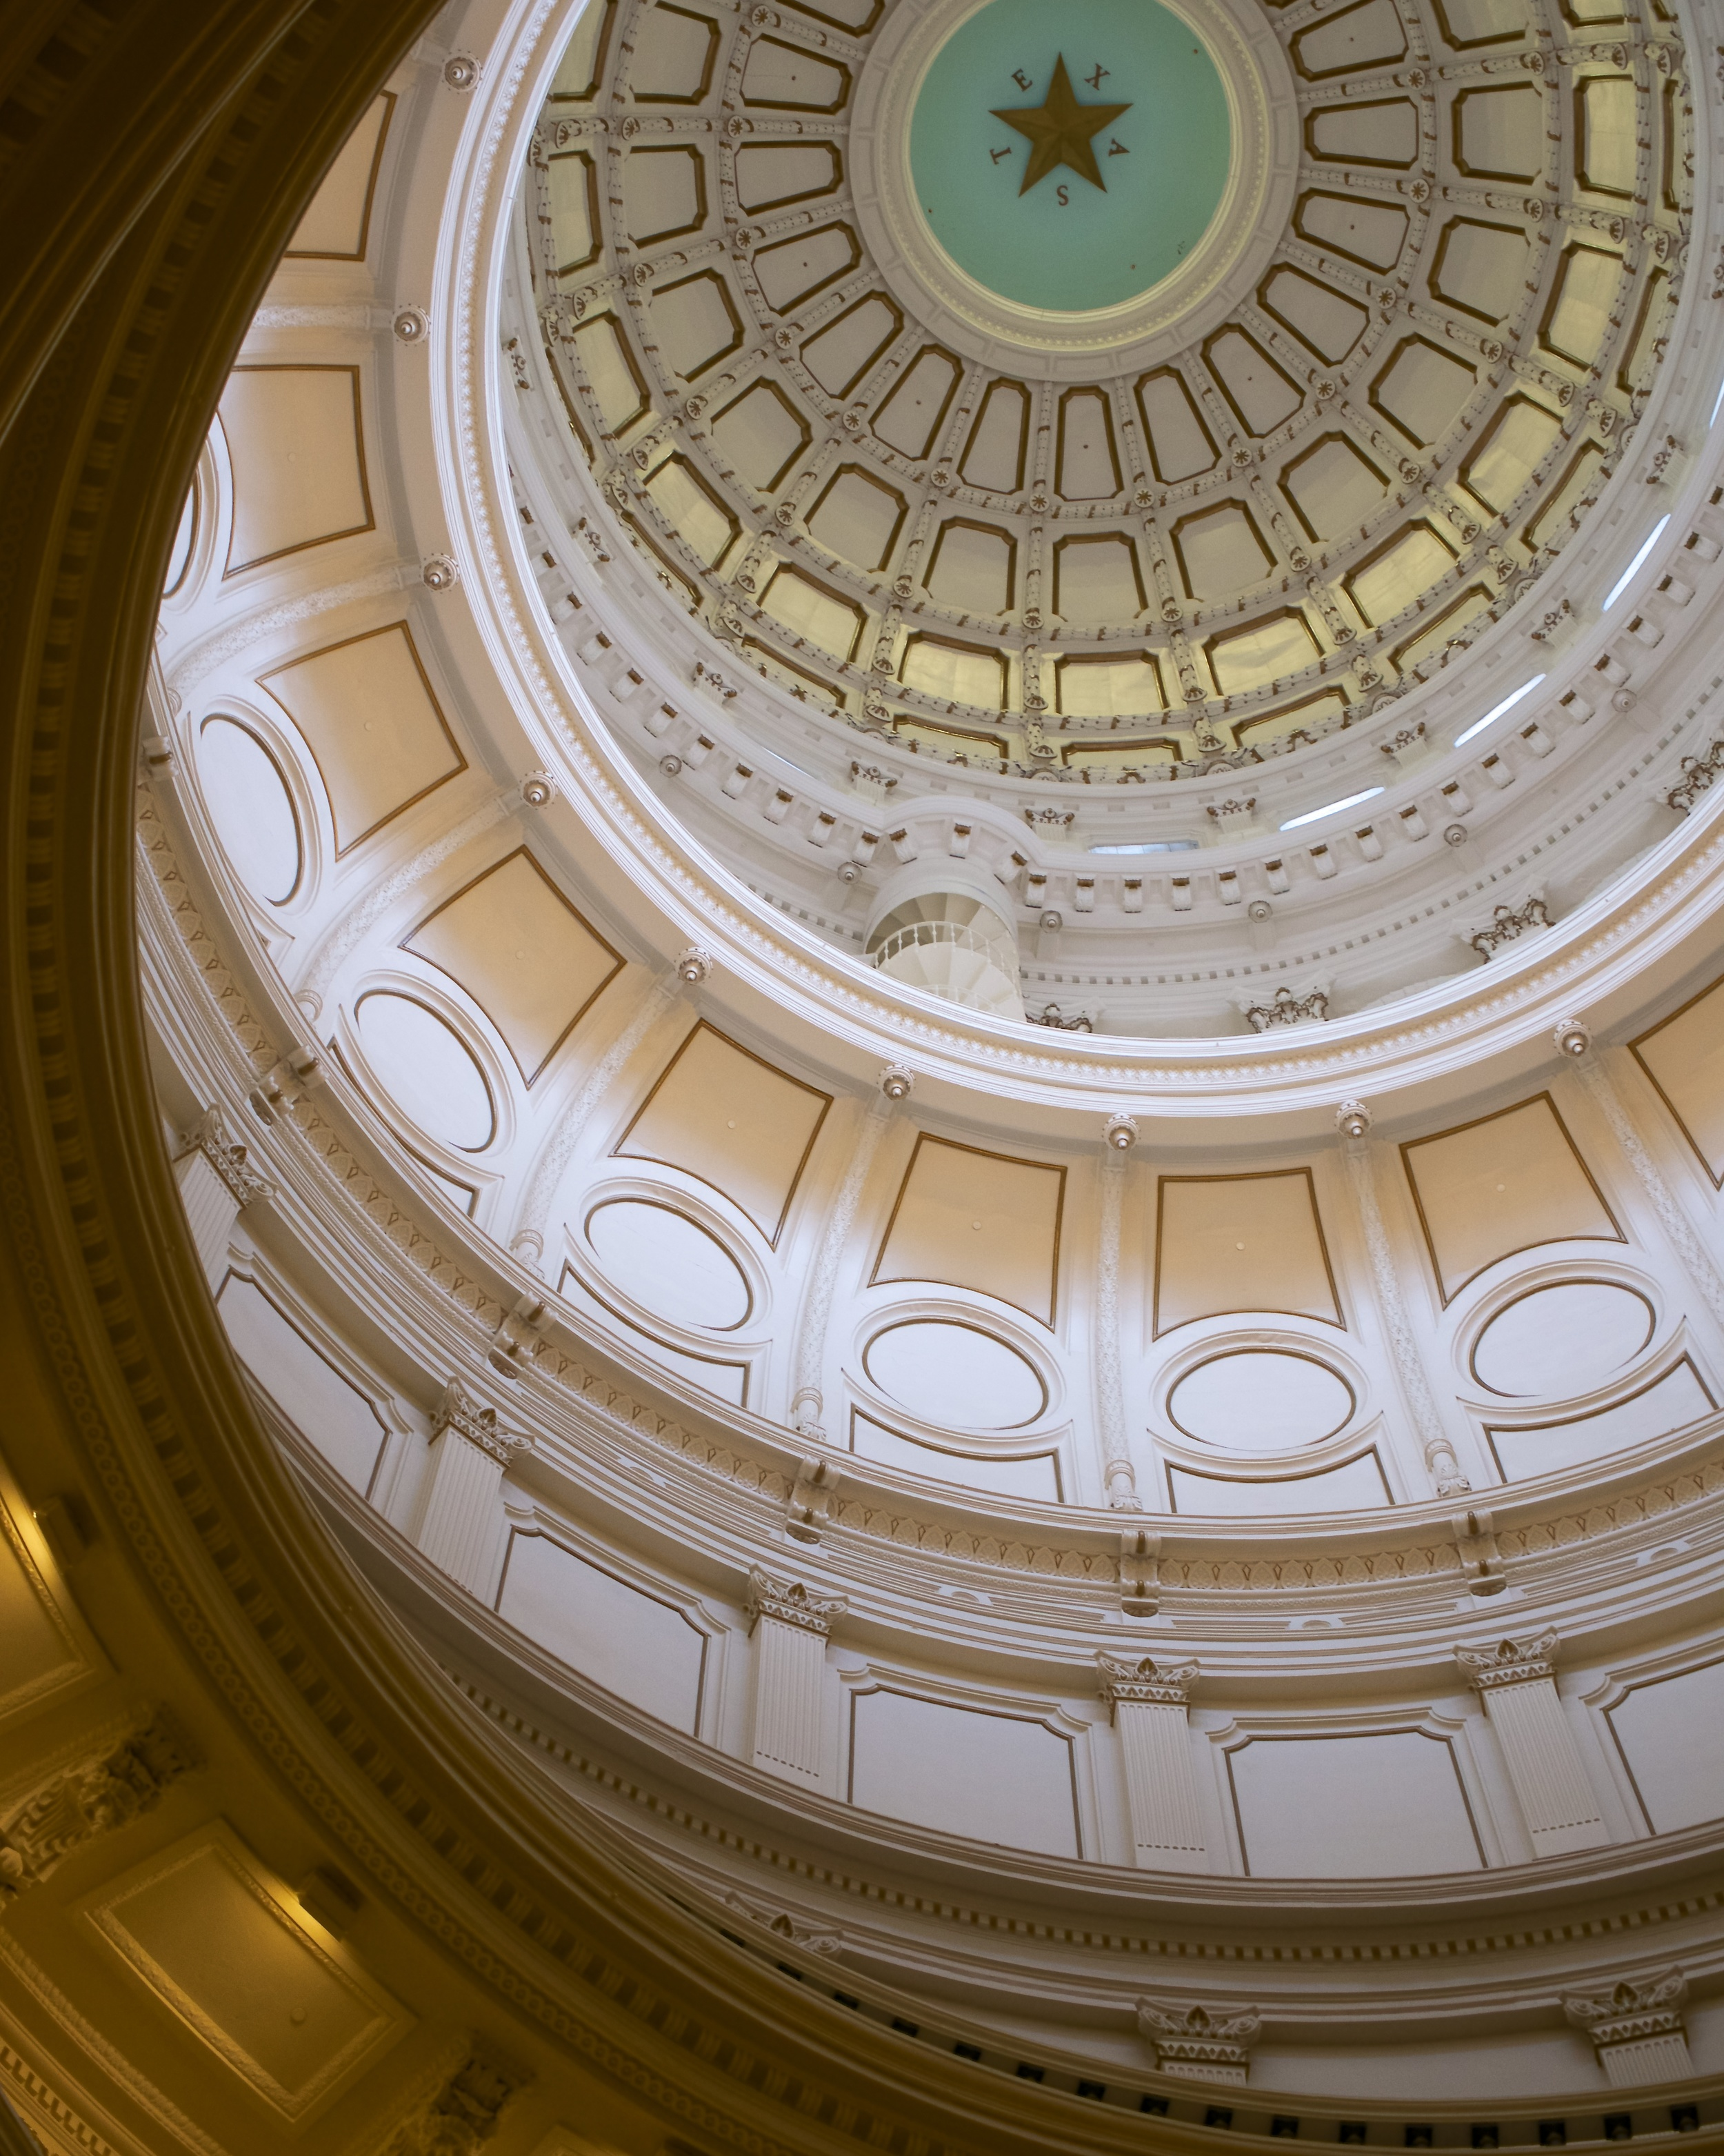 Inside of the dome of the Capitol